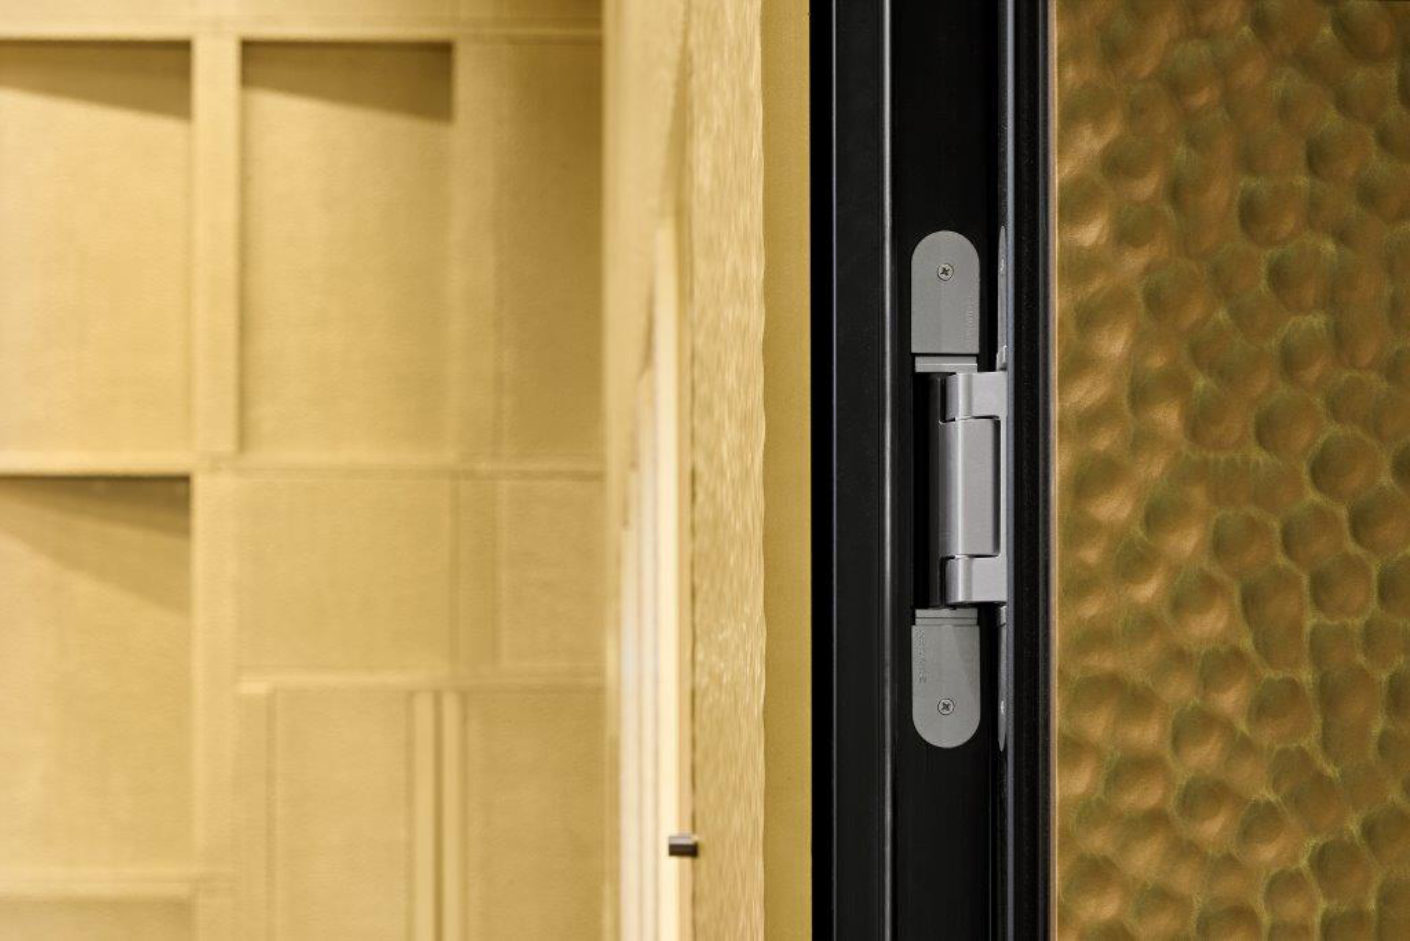 """The planners decided to use the concealed """"Tectus TE 640 3D"""" hinges for the 110 Millimeter-thick sound-proof doors."""